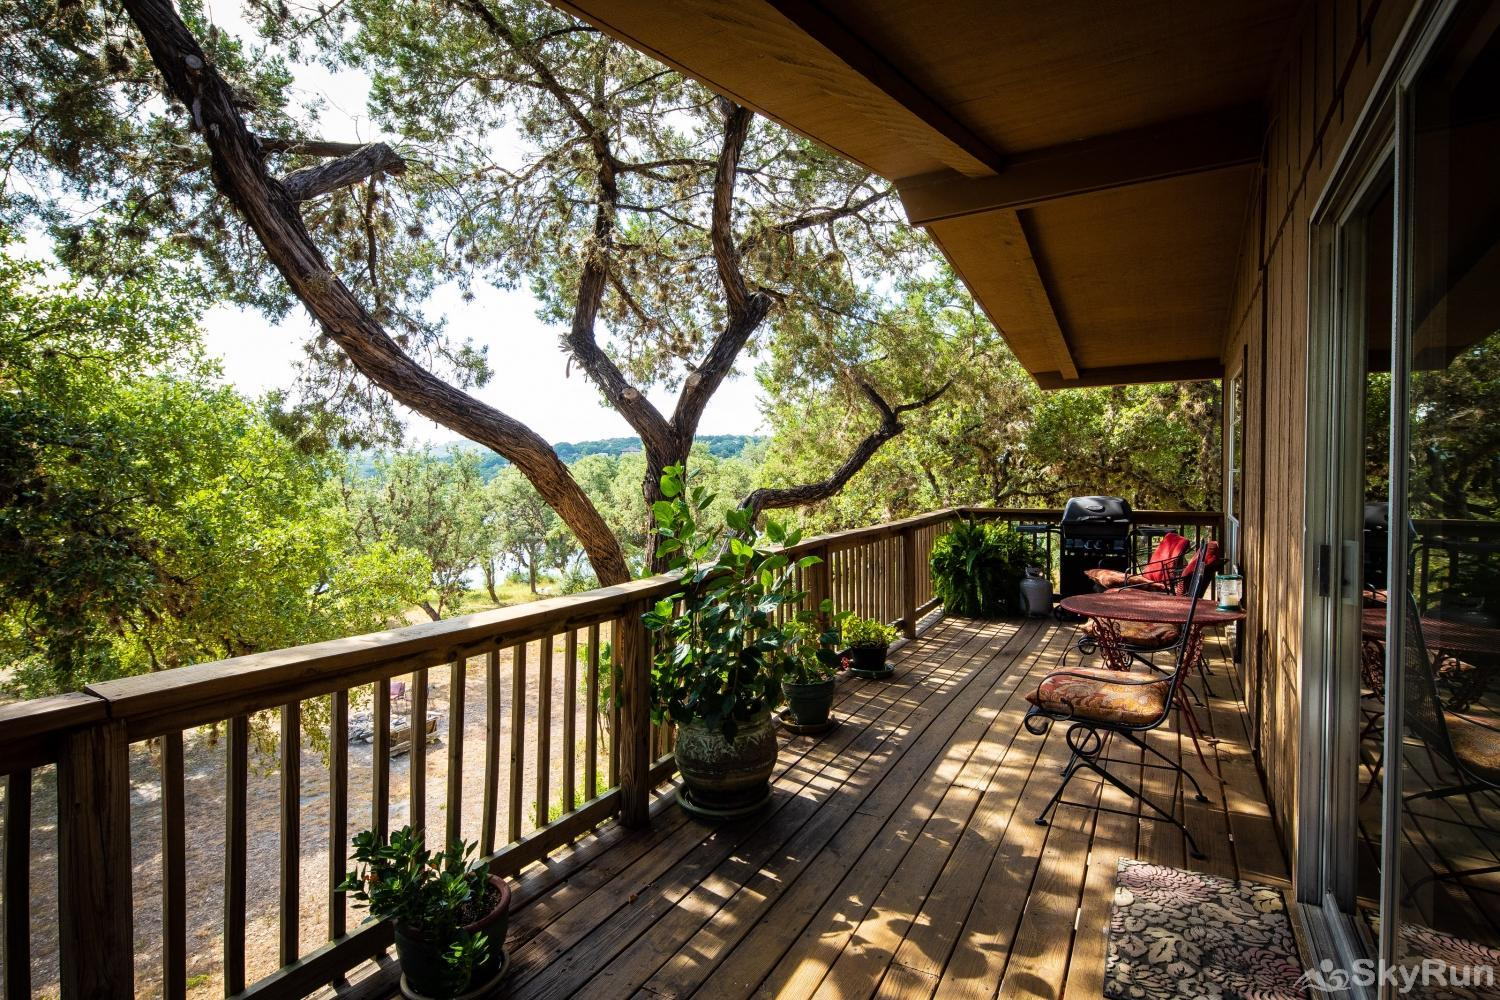 CASA DEL LAGO Deck area with lake view, shaded by oak trees